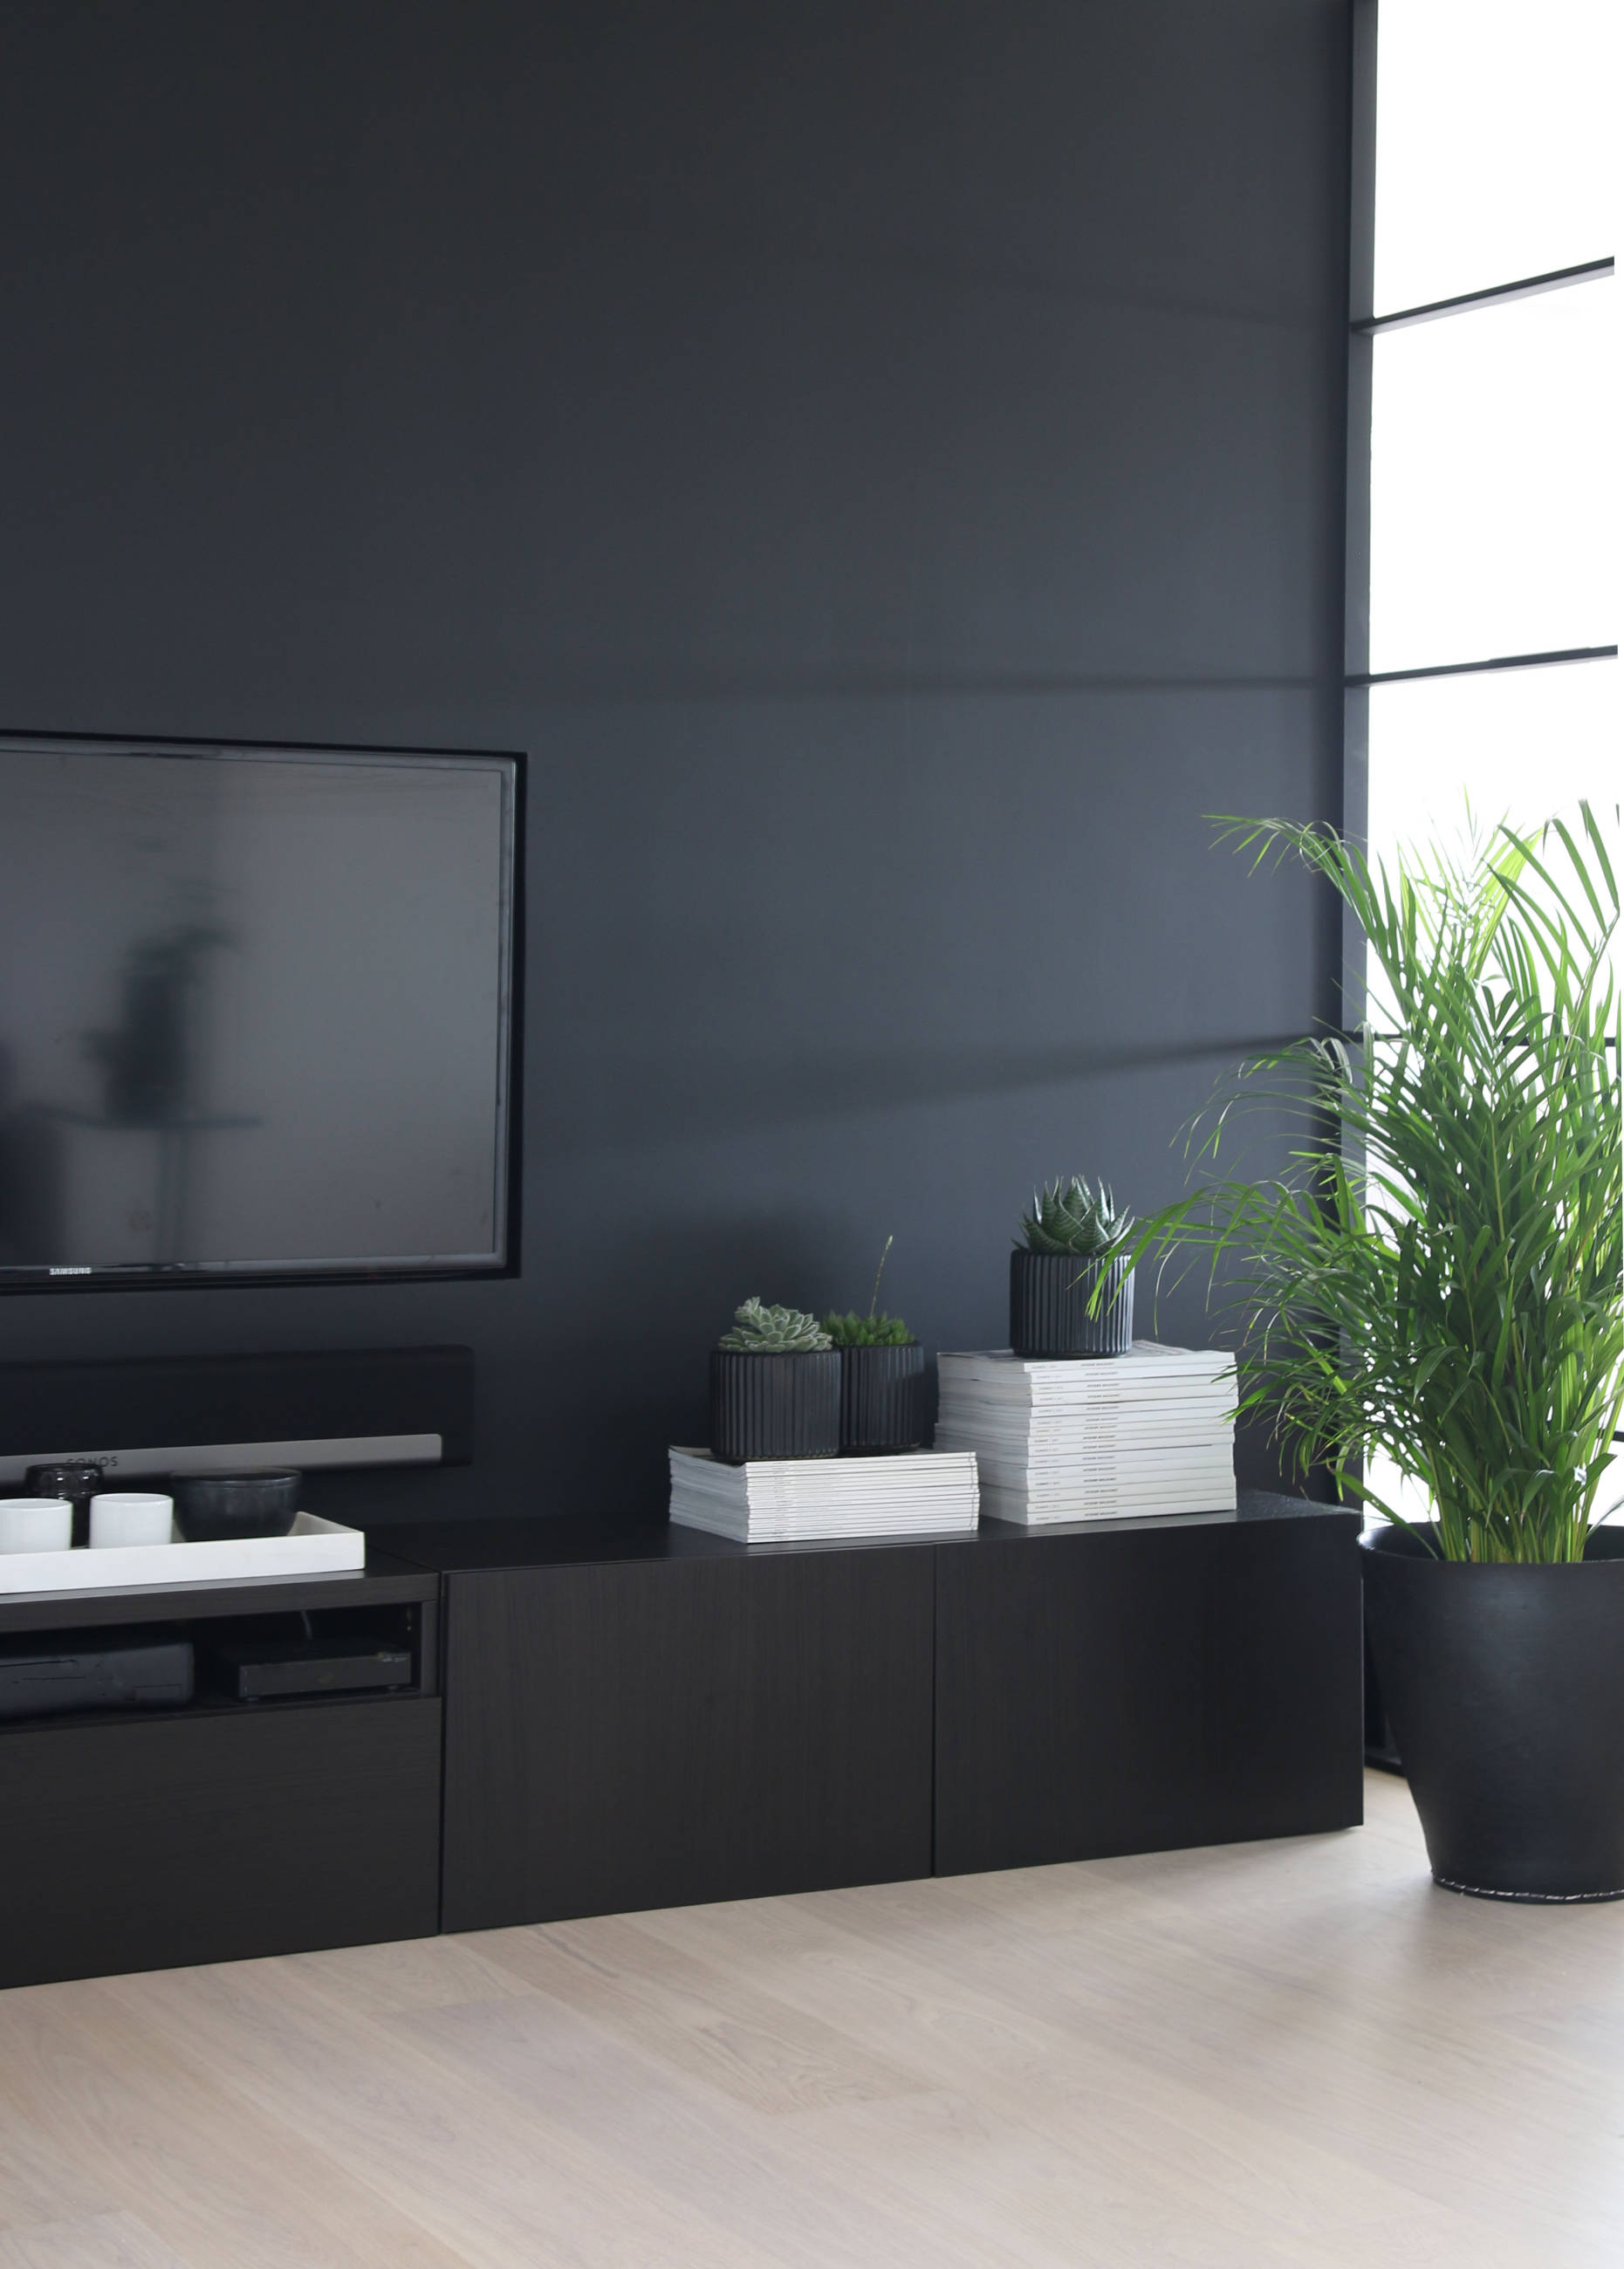 Hyggelig TAILORED TV SOLUTION - Therese Knutsen LM-63